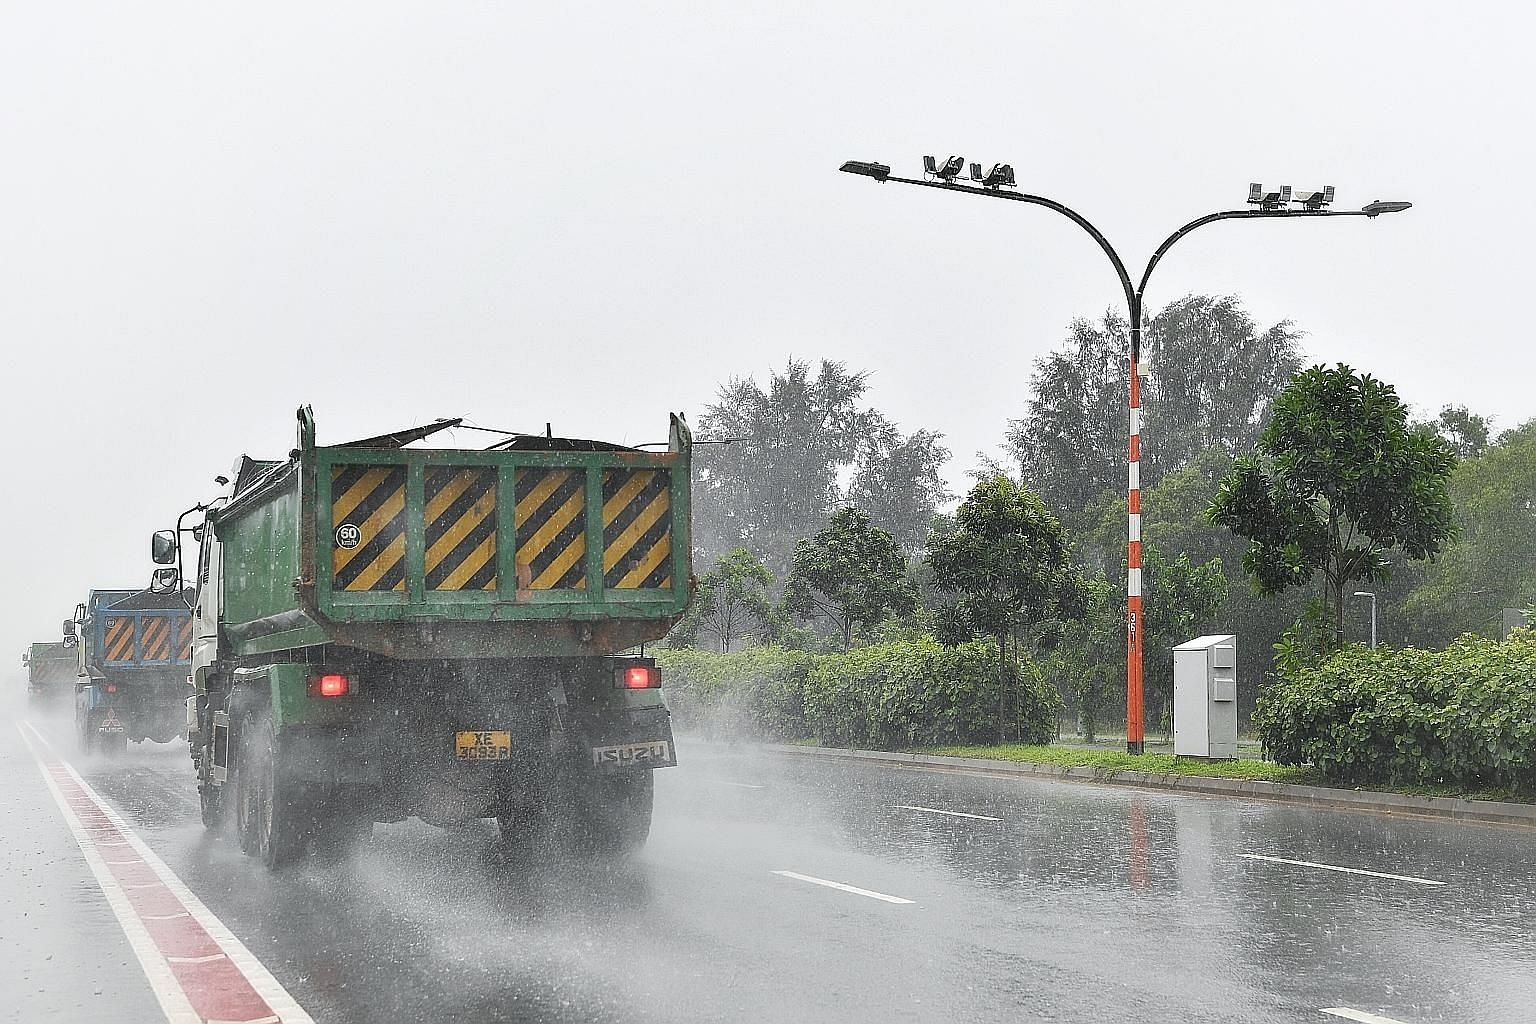 The police will begin using the Average Speed Camera system for enforcement action along a stretch of Tanah Merah Coast Road from next Monday. The system comprises cameras at the entrance and exit of the enforcement zone. It will detect and compute t